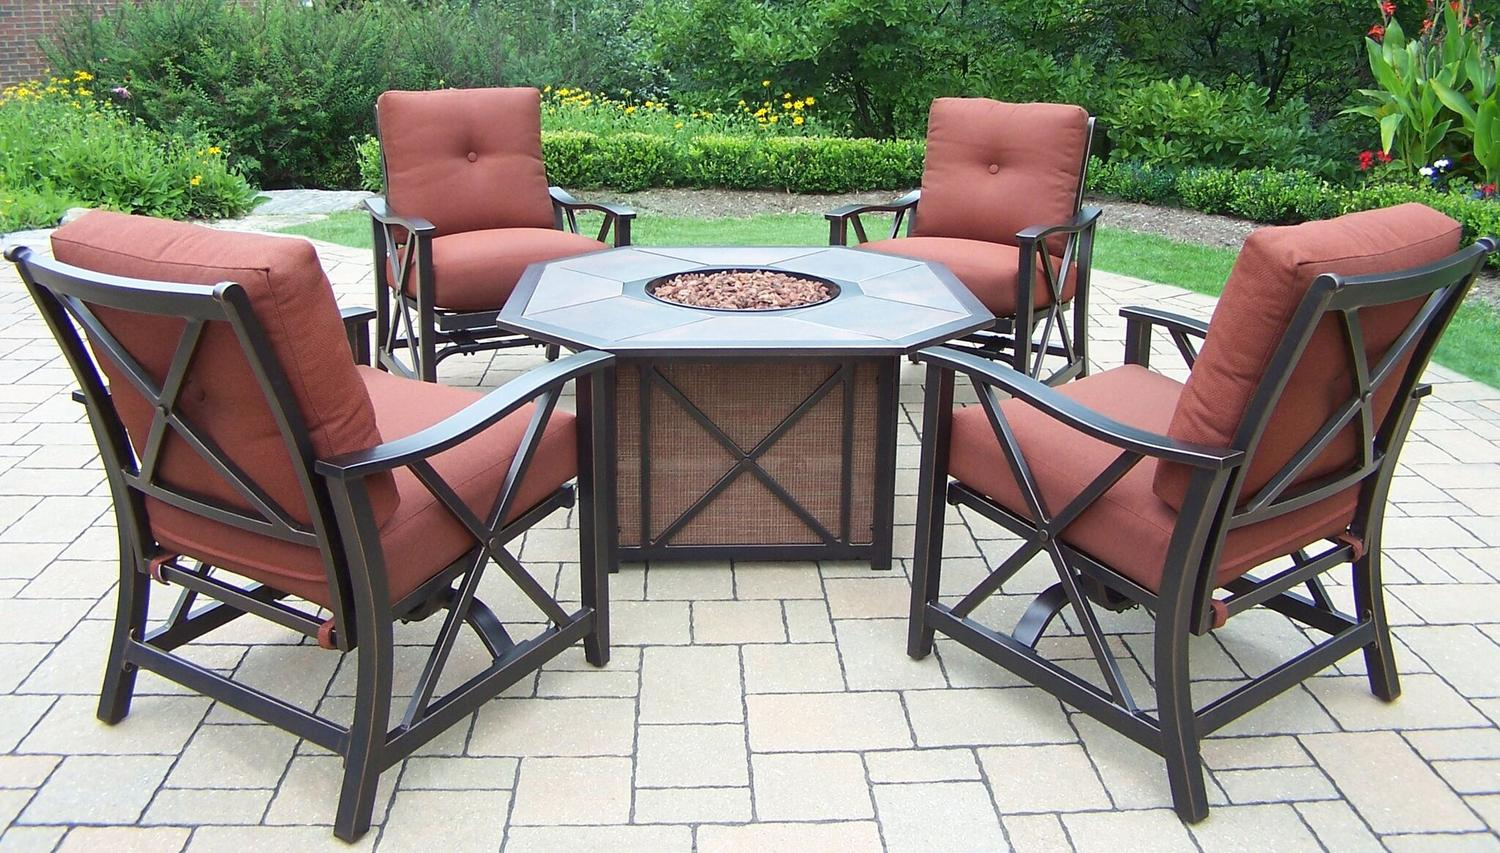 5 Piece Brown Aluminum Outdoor Furniture Patio Fire Pit Deep Seating Chat  Set   Red